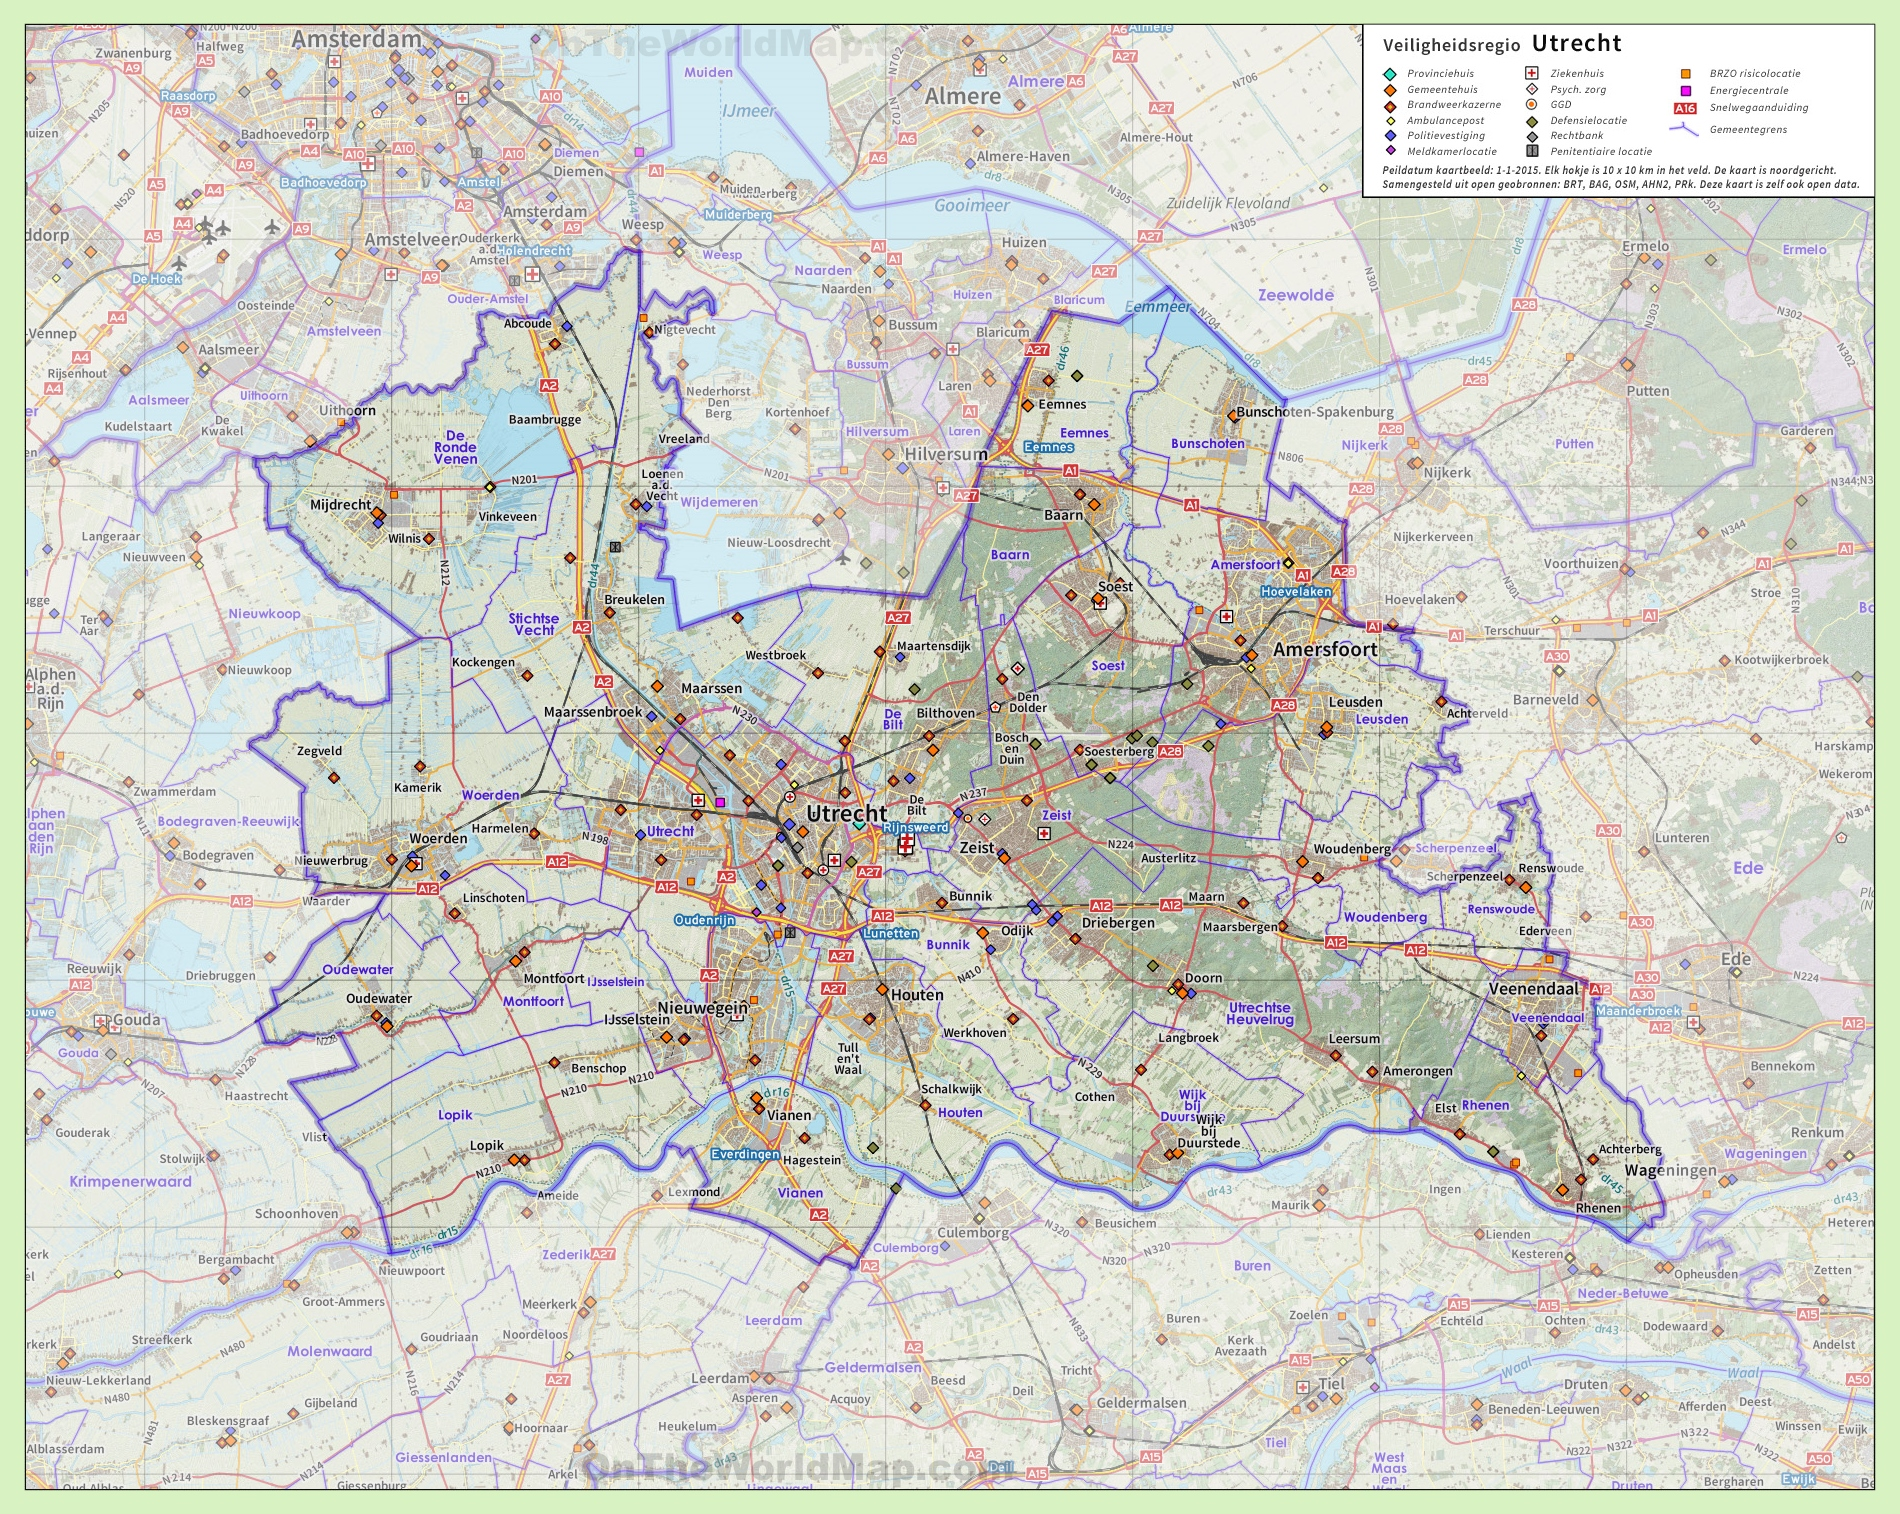 Utrecht province road map